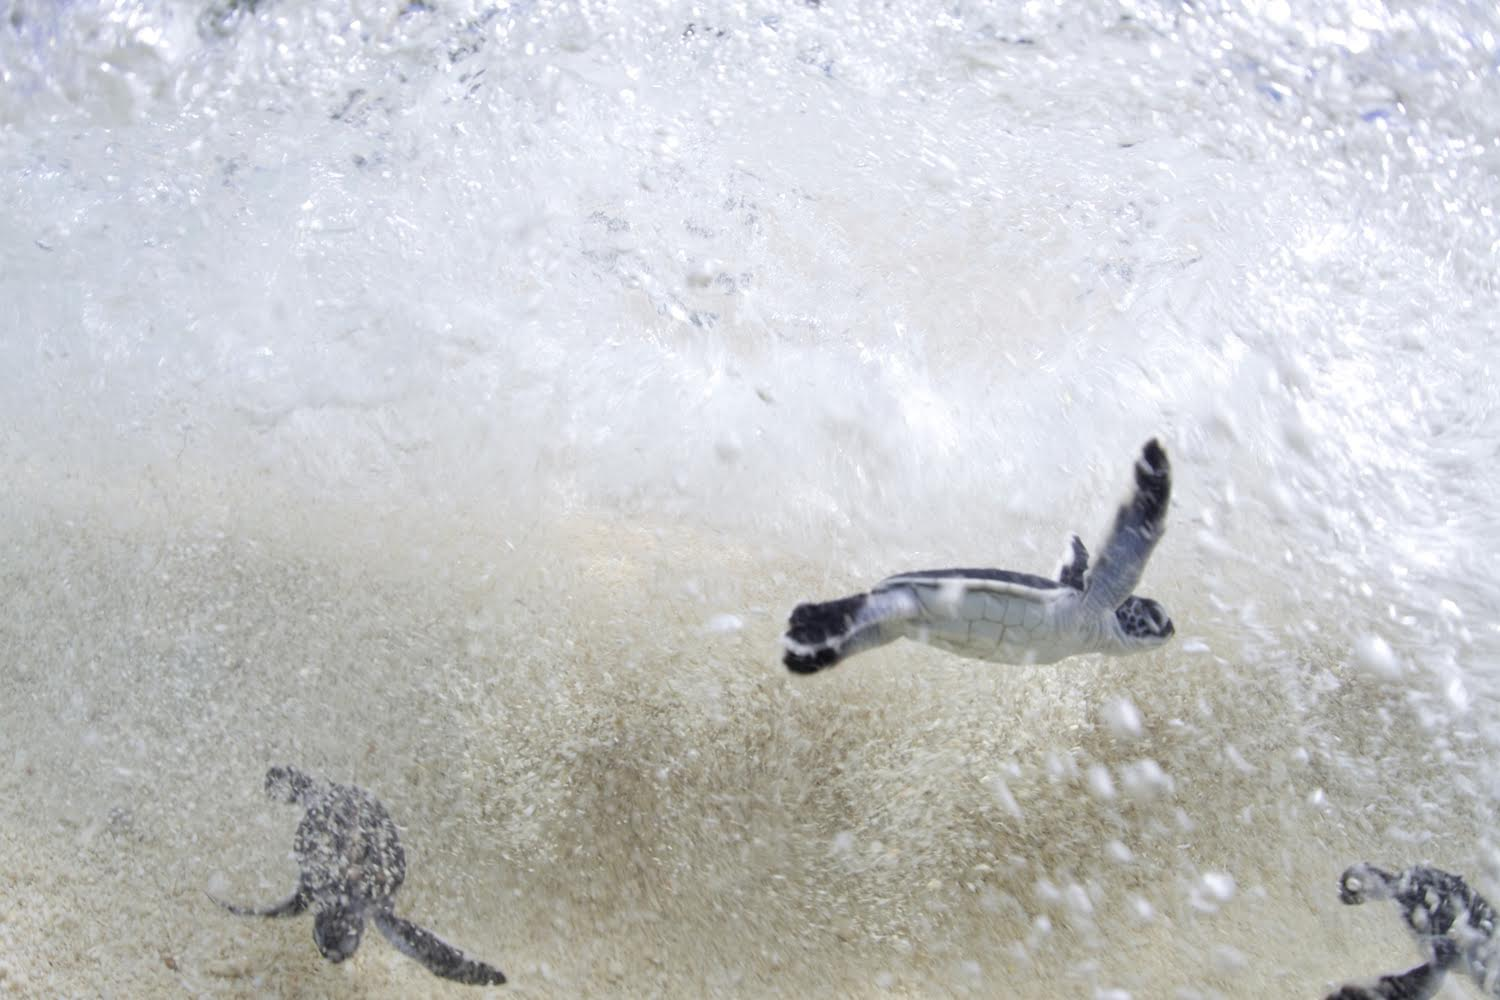 A nest full of newly hatched endangered Green Sea Turtles immediately race into the sea. (Credit © Keith Ellenbogen)